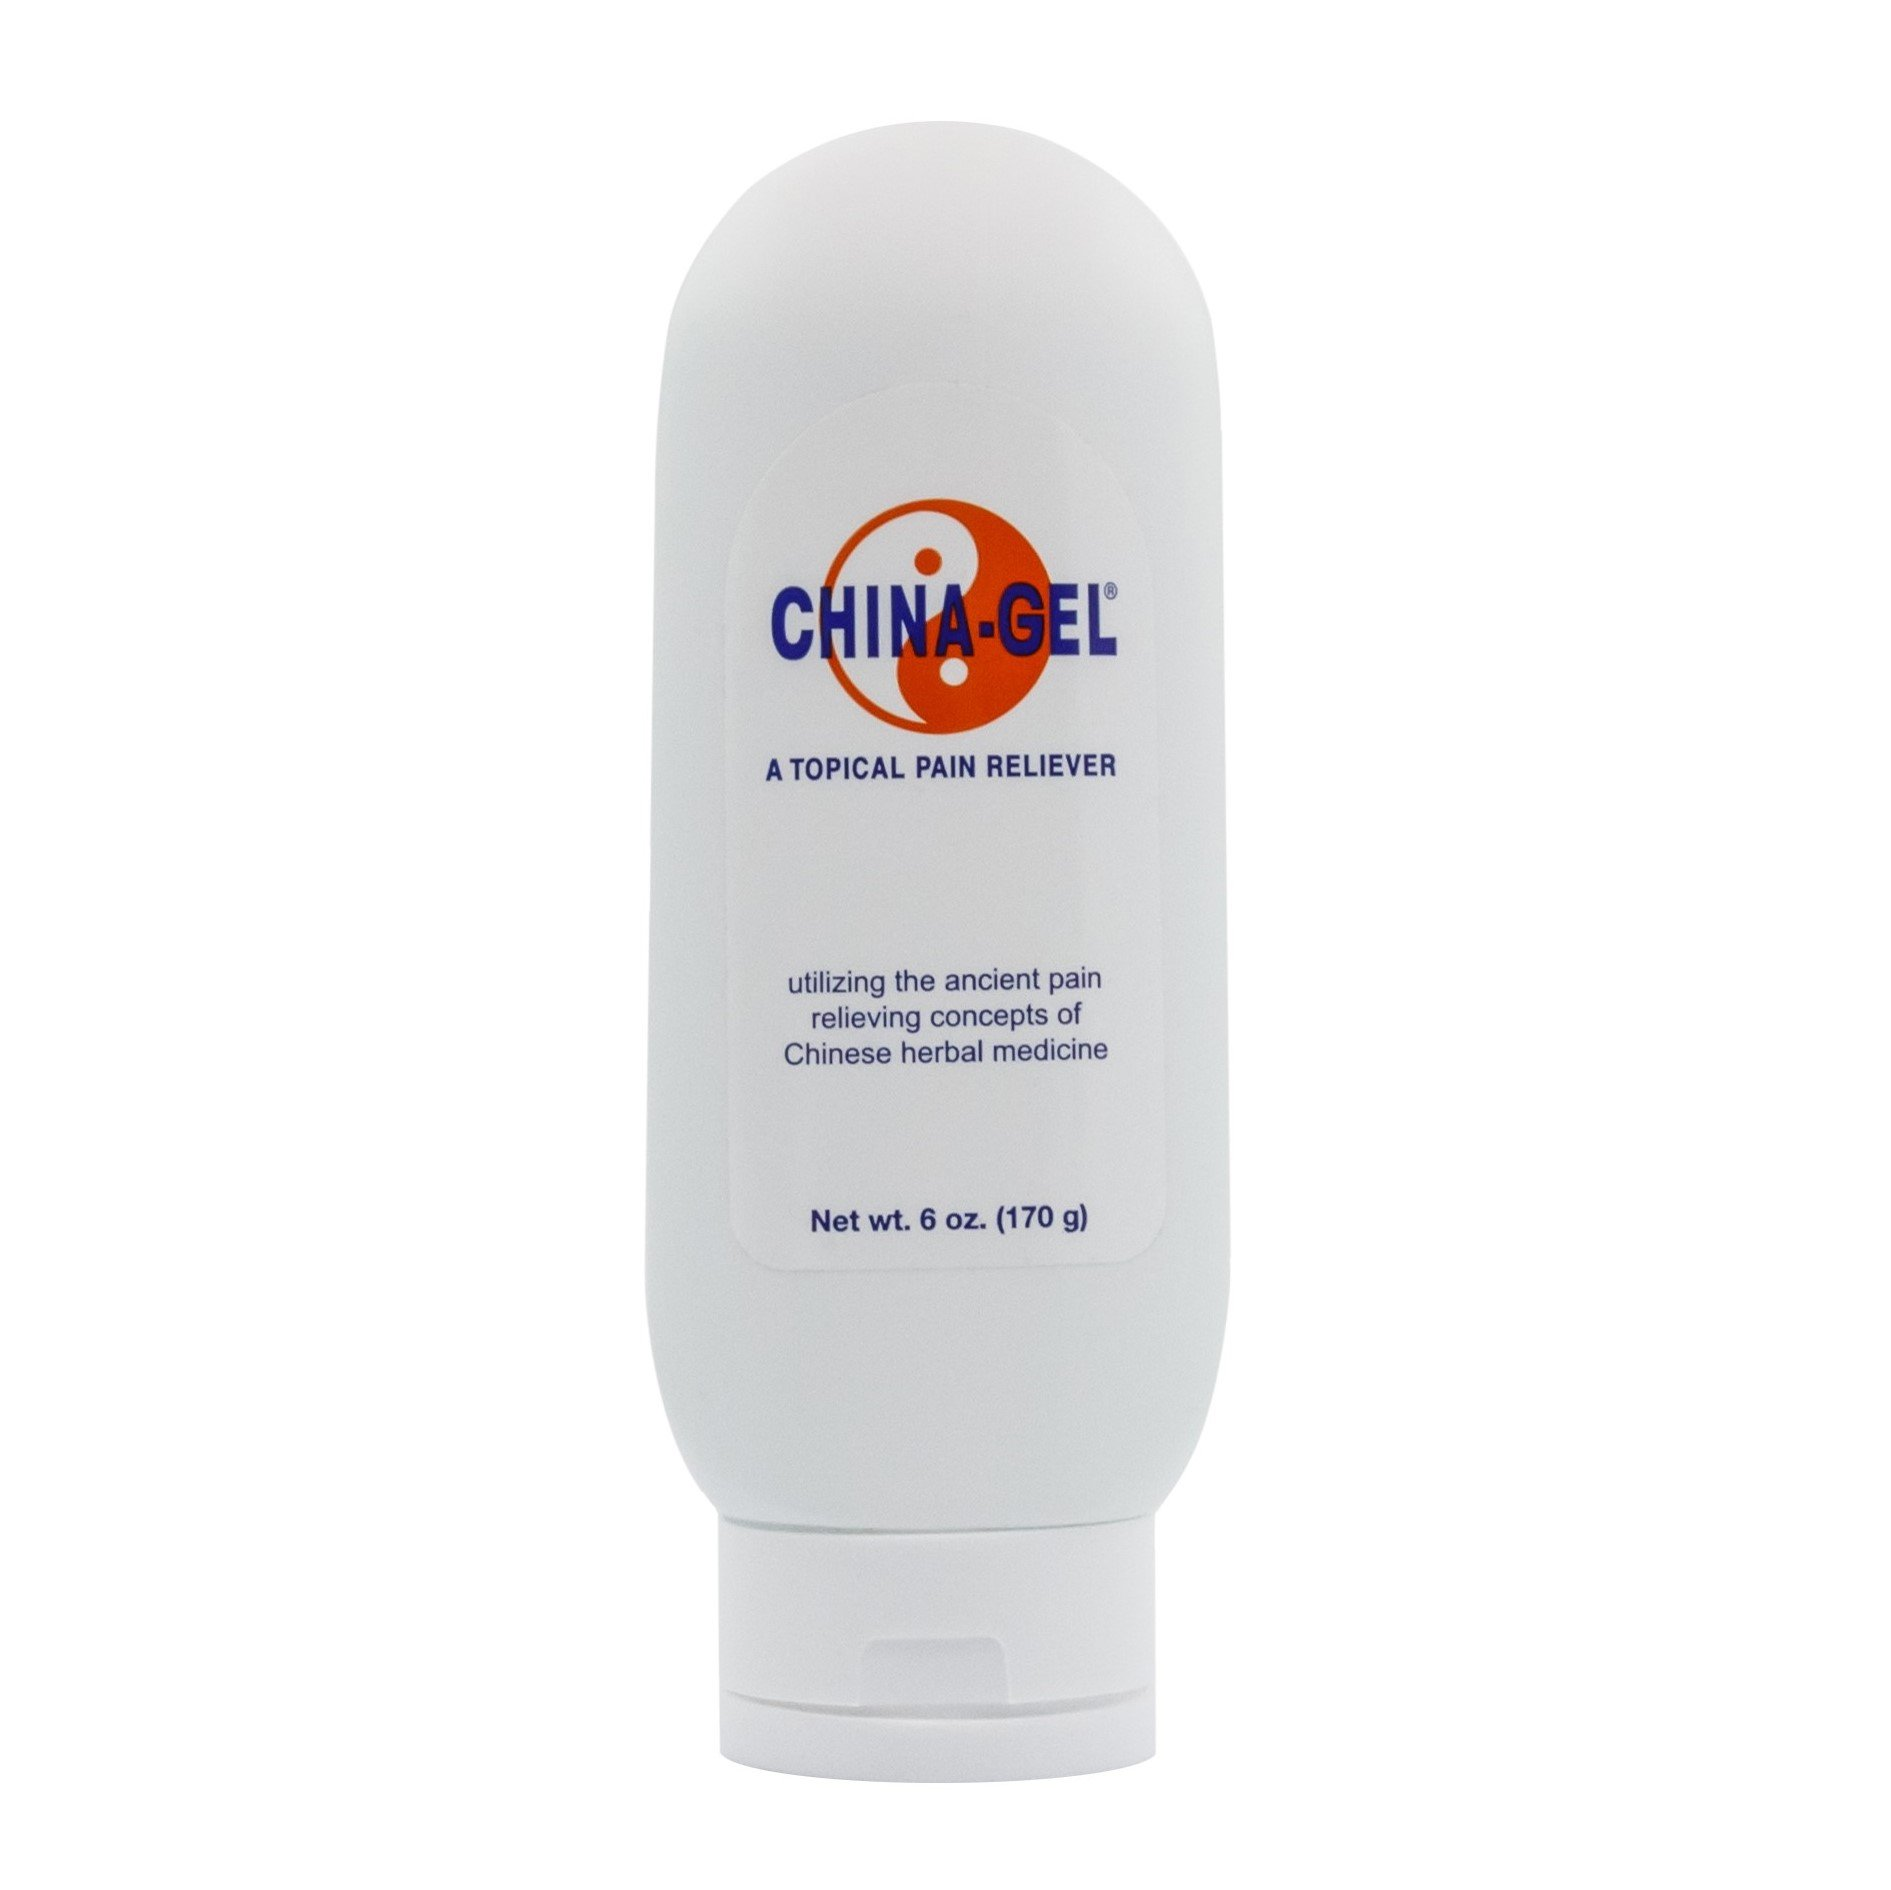 China-Gel - Topical Pain Reliever, 6 oz. by China Gel